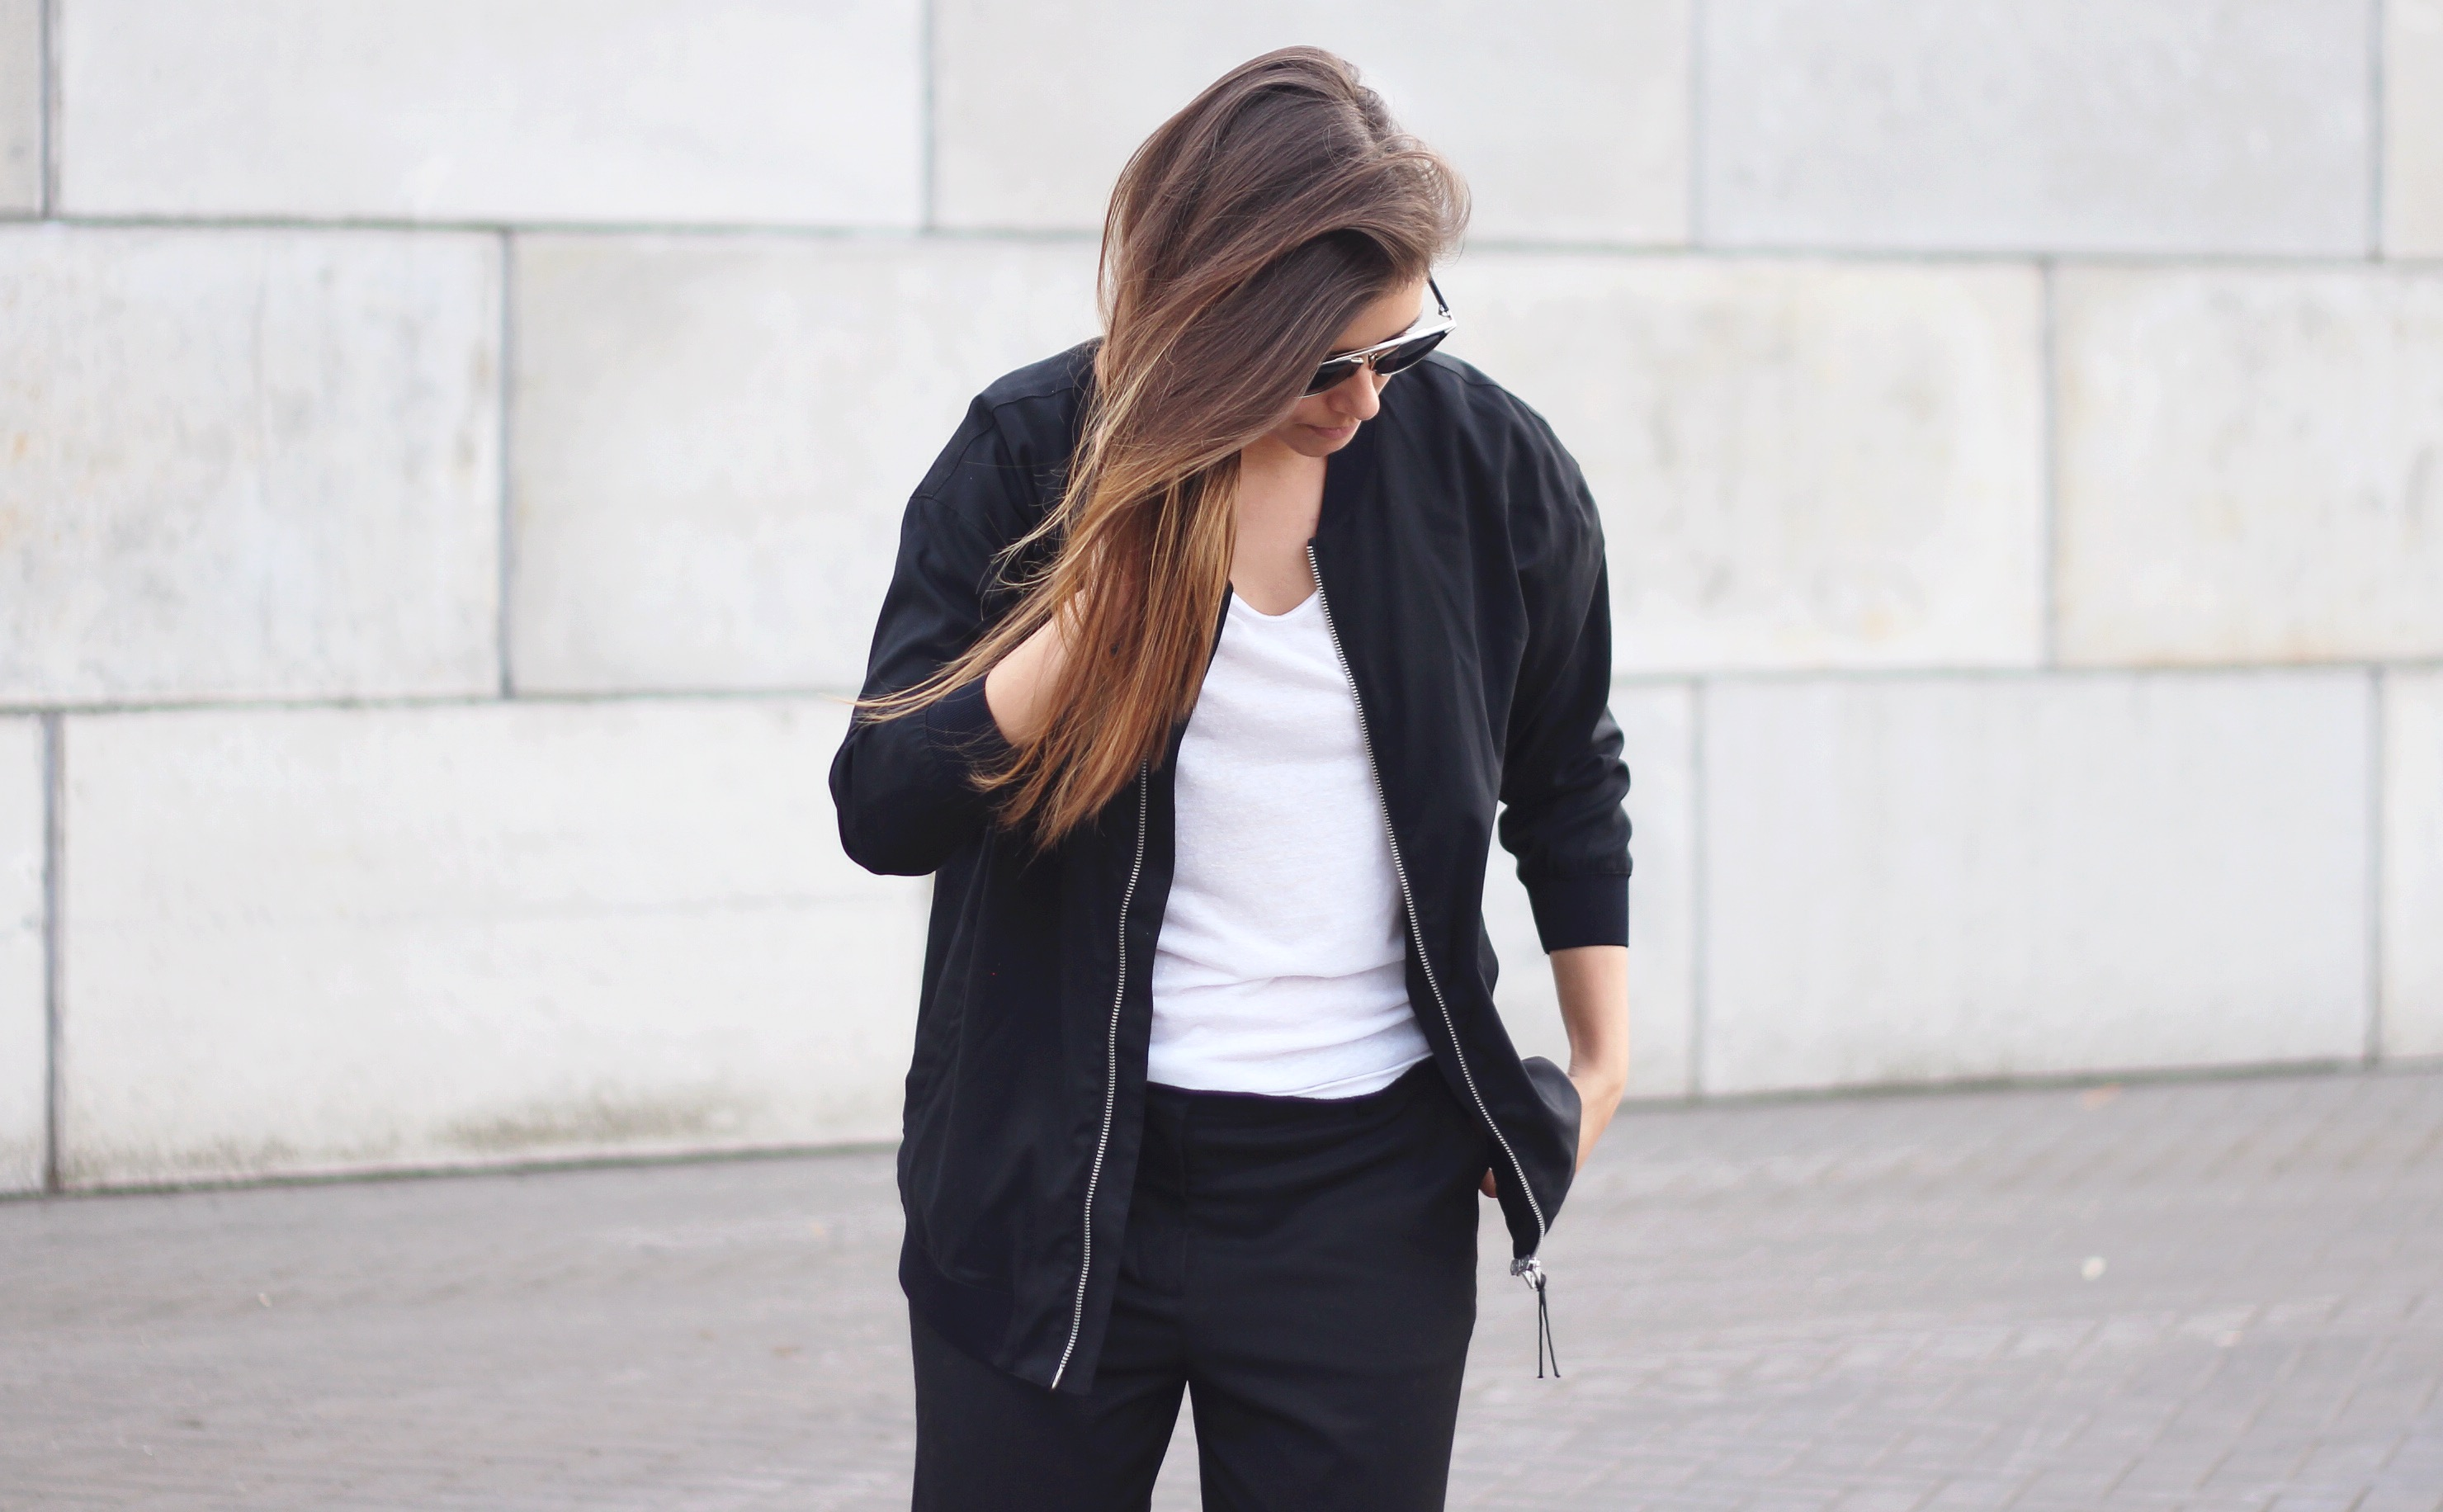 All saints, black, bomber jacket, street style, inspiration